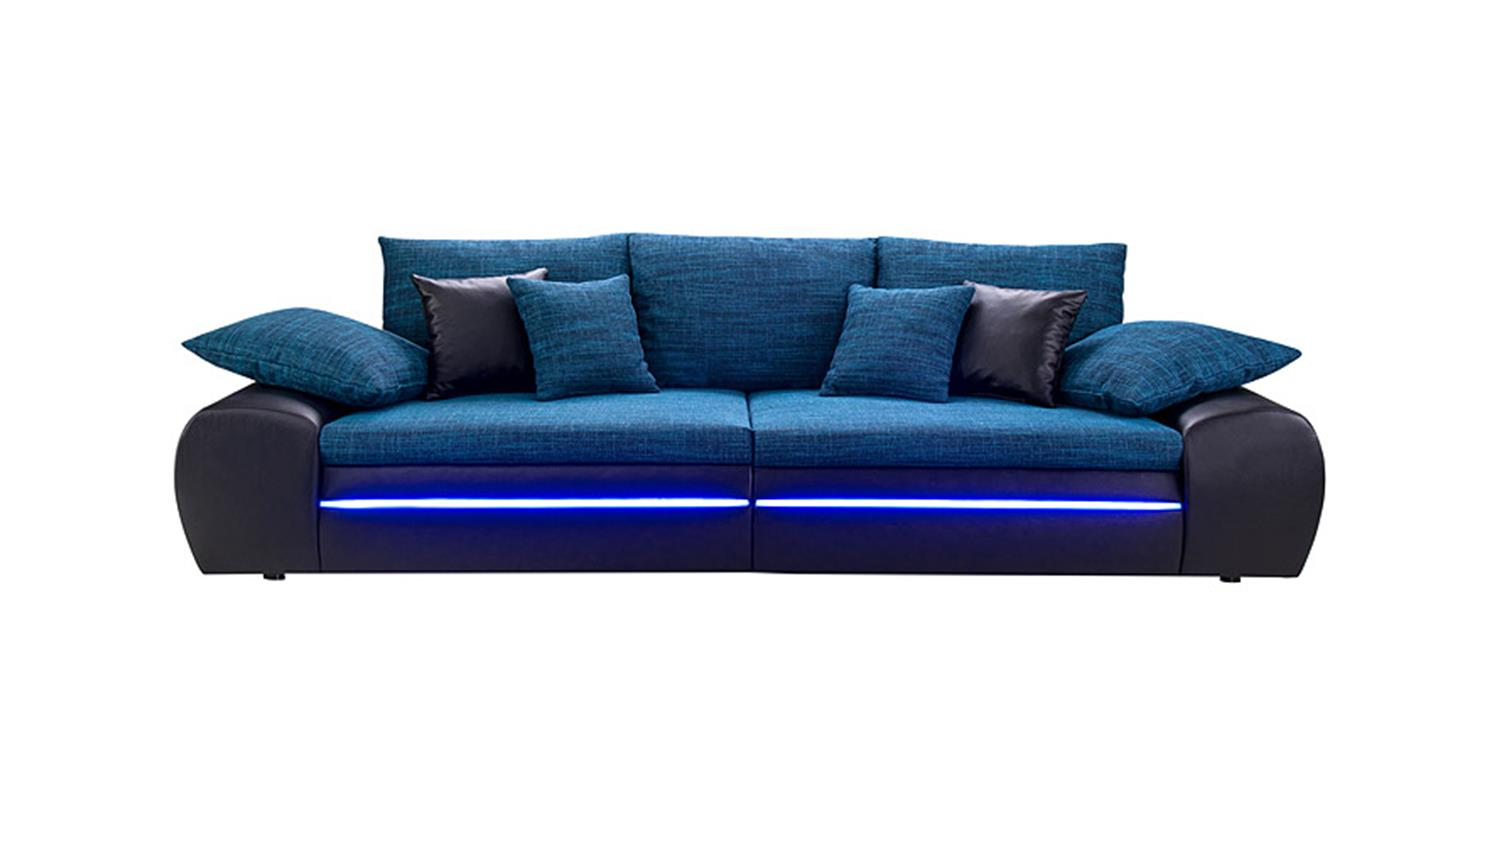 big sofa dubai schwarz blau inklusive rgb led beleuchtung. Black Bedroom Furniture Sets. Home Design Ideas